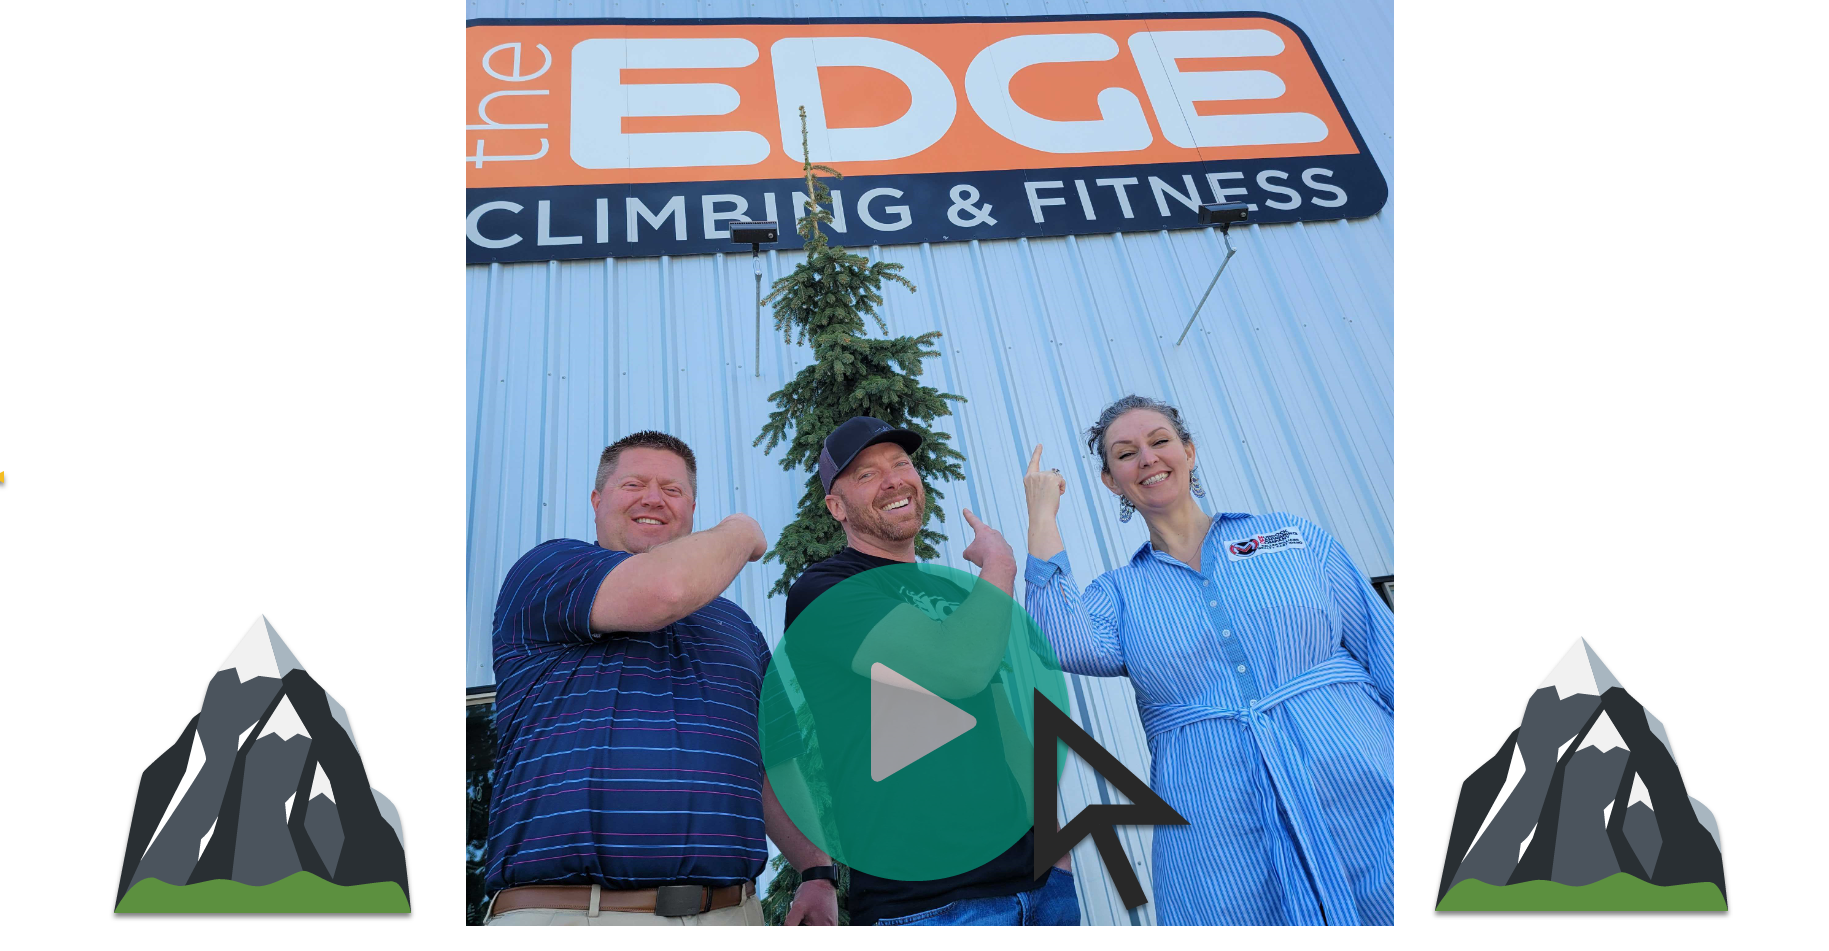 The Knowsy Neighbors visit The Edge Climbing and Fitness